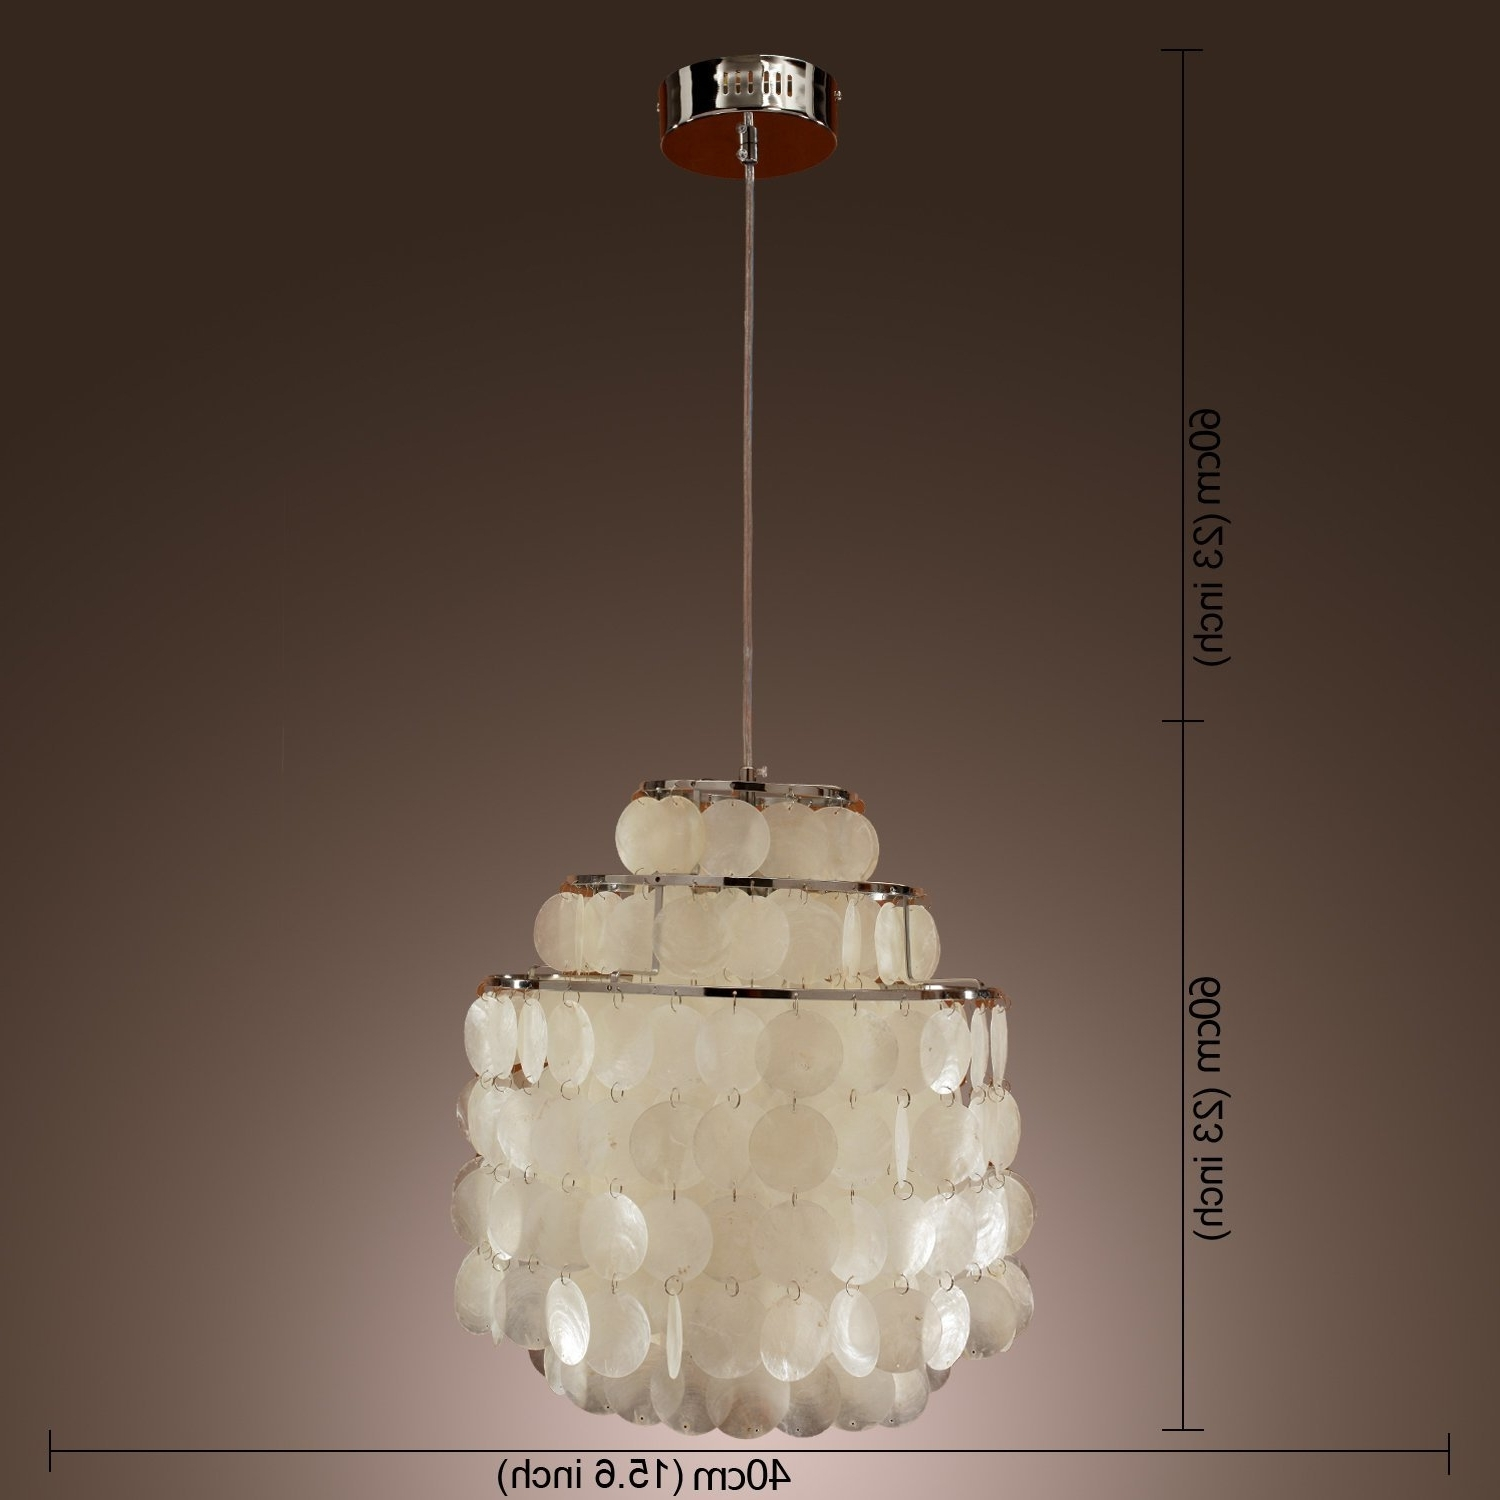 Modern Pendant Chandelier Lighting Throughout Fashionable Lightinthebox Modern White Shell Pendant Chandelier Mini Style (View 9 of 15)